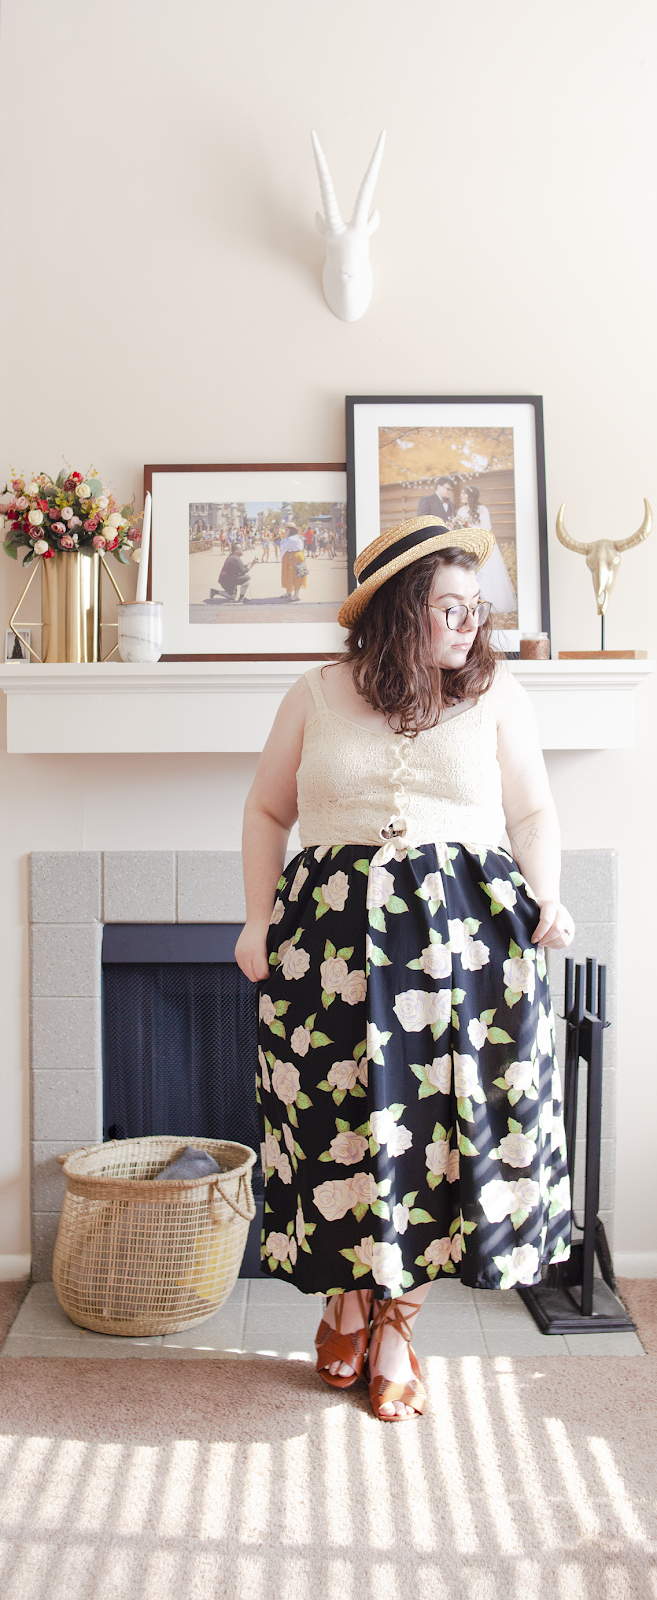 An outfit consisting of a wide brim straw boater hat, an off-white tie up lace crop top, black floral skirt, and brown tie up sandals.